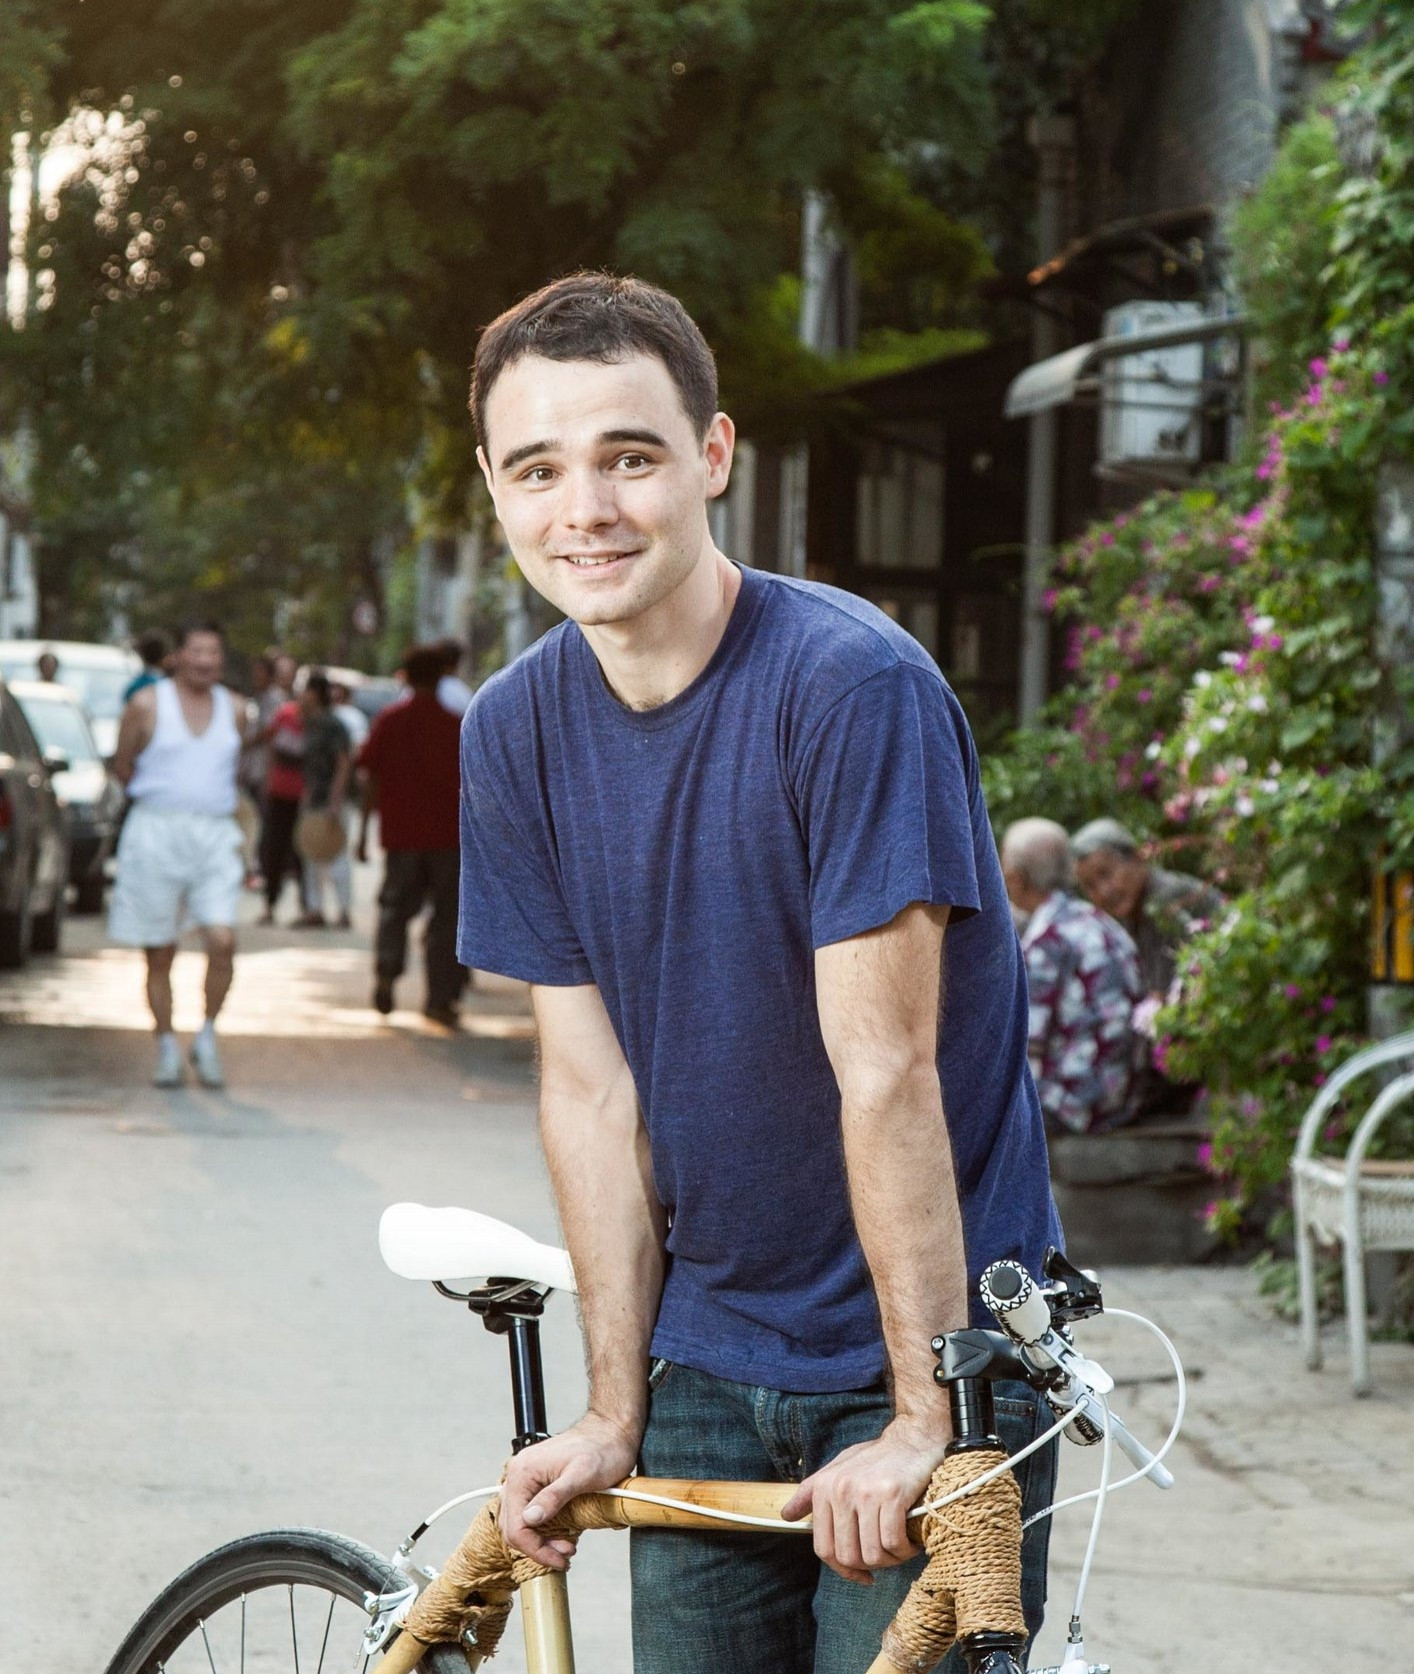 David Wang, the founder and instructor of Bamboo Bicycle Beijing, poses for the photograph in an alleyway of Hutong, a traditional residential area in Beijing, China.